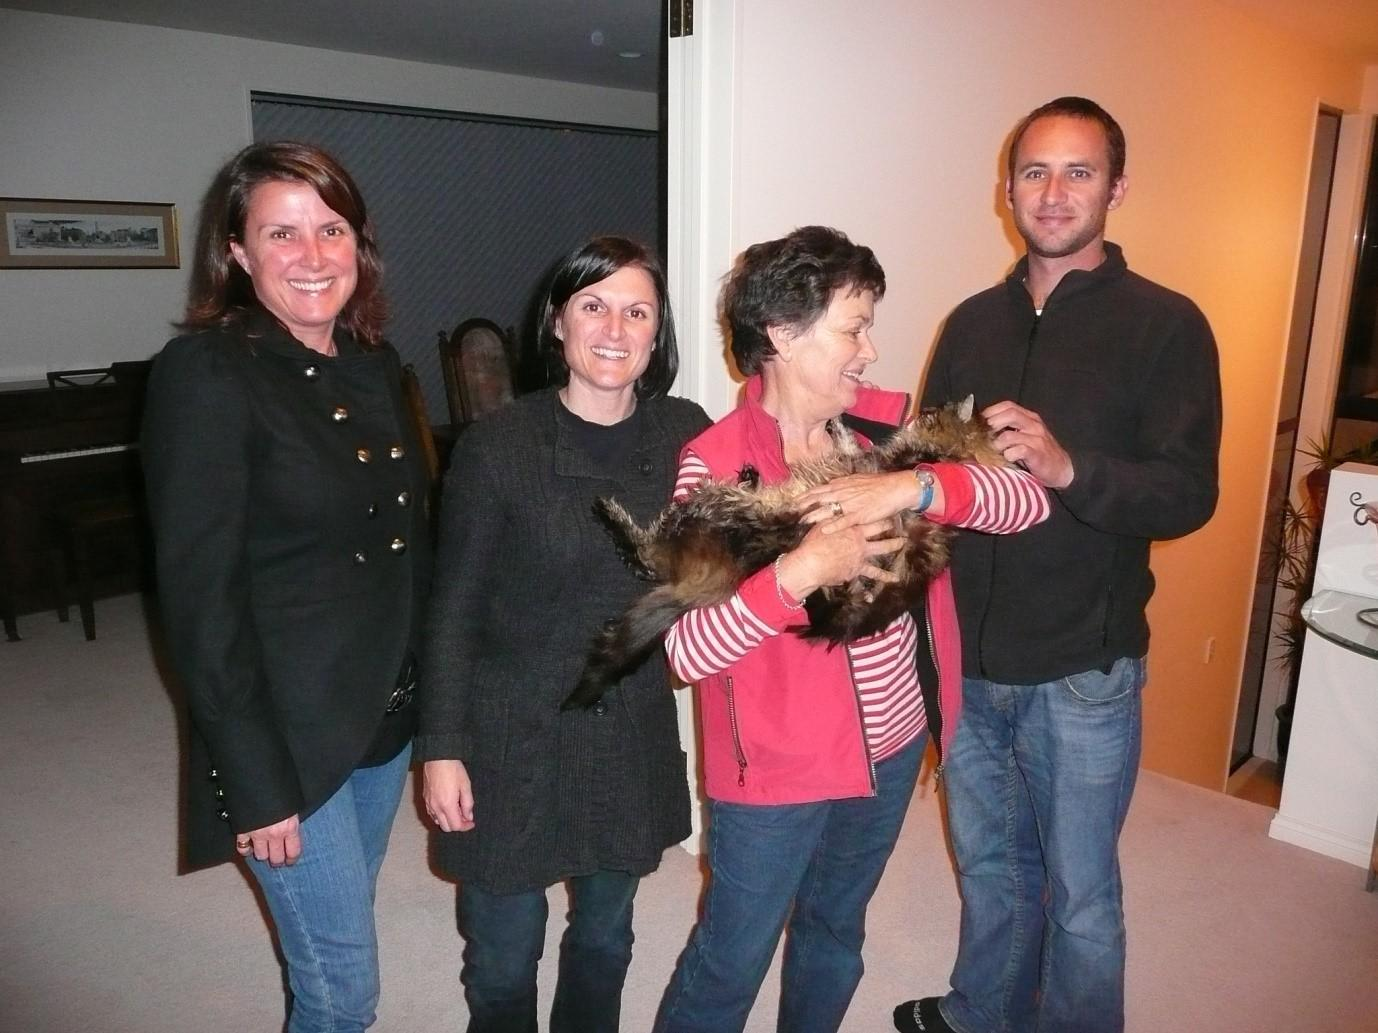 Tracey, Steph, Lady Joanie With Oscar The Baron, Brendon At Gretna Green, Browns Bay